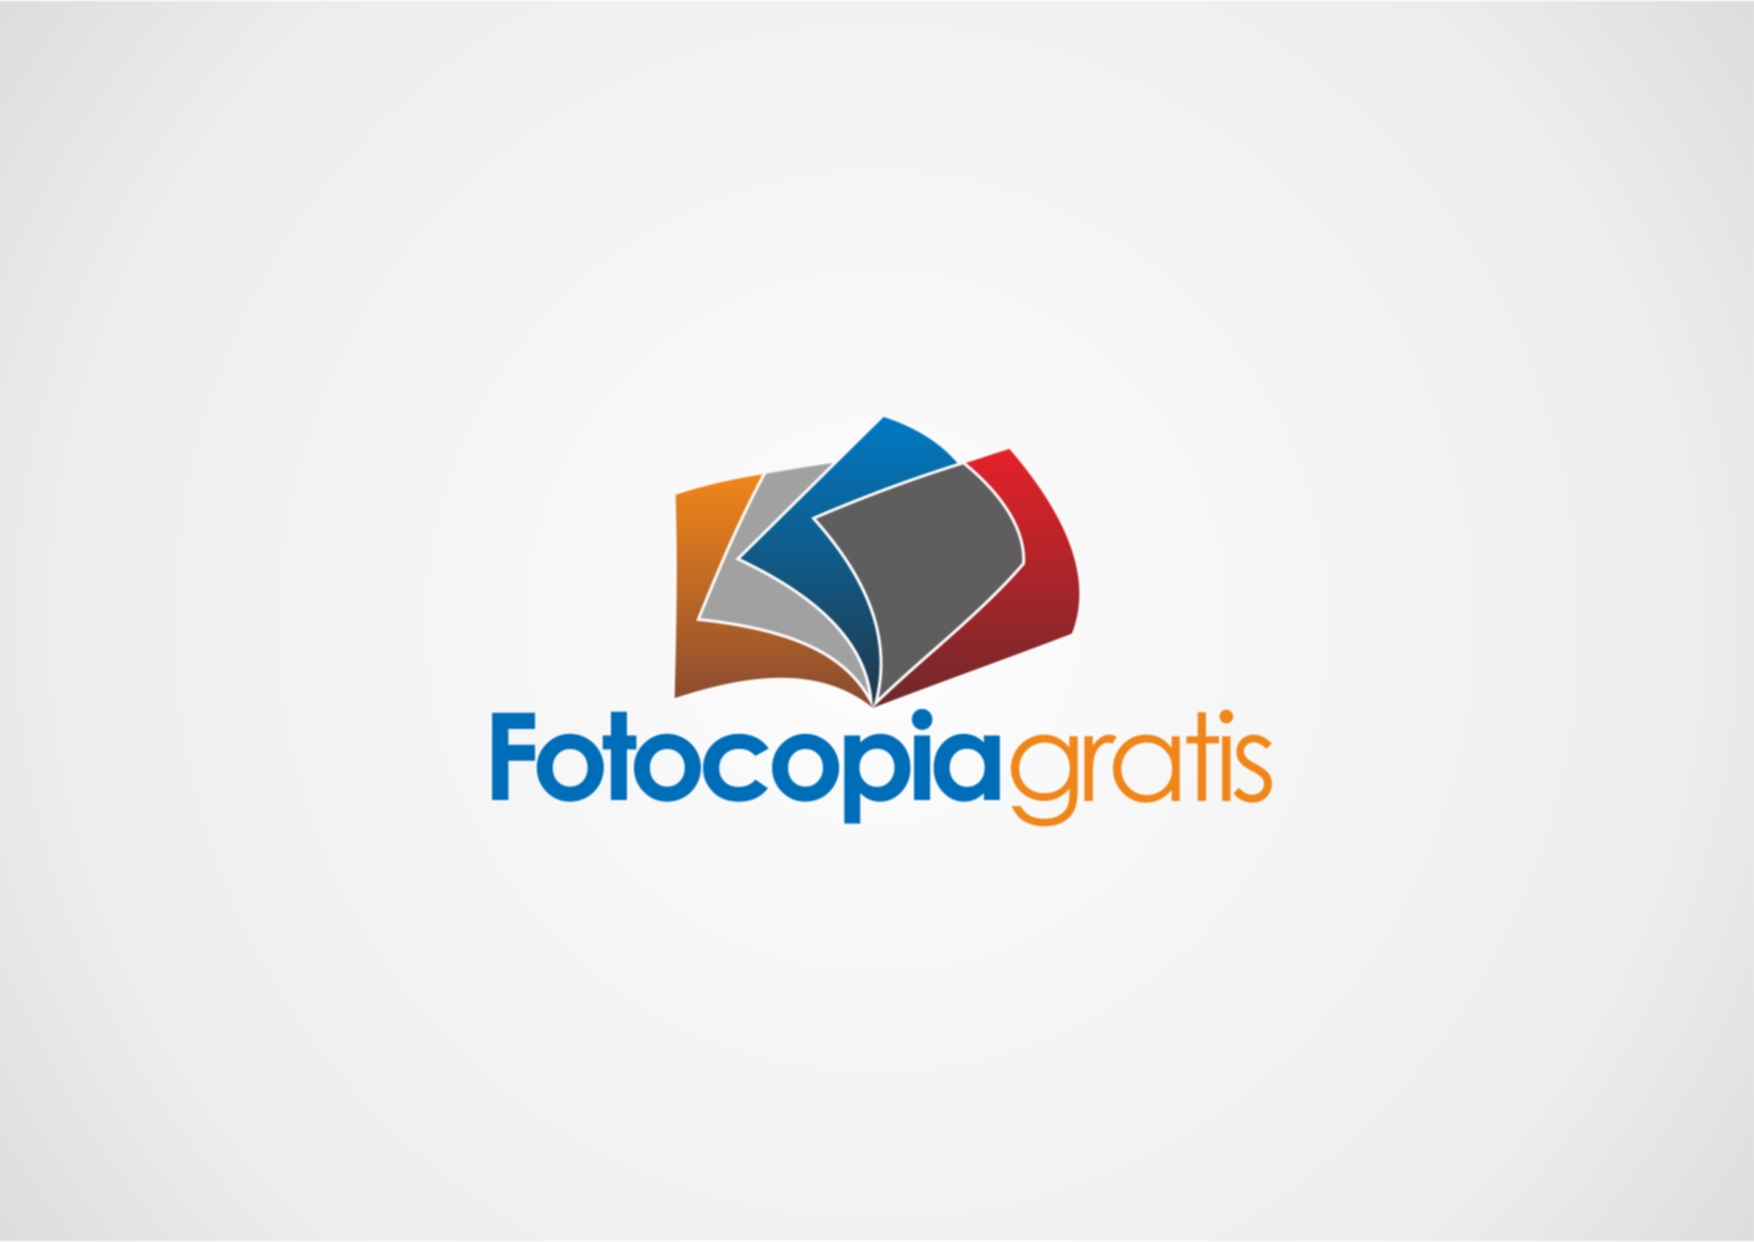 Logo Design by Private User - Entry No. 157 in the Logo Design Contest Inspiring Logo Design for Fotocopiagratis.